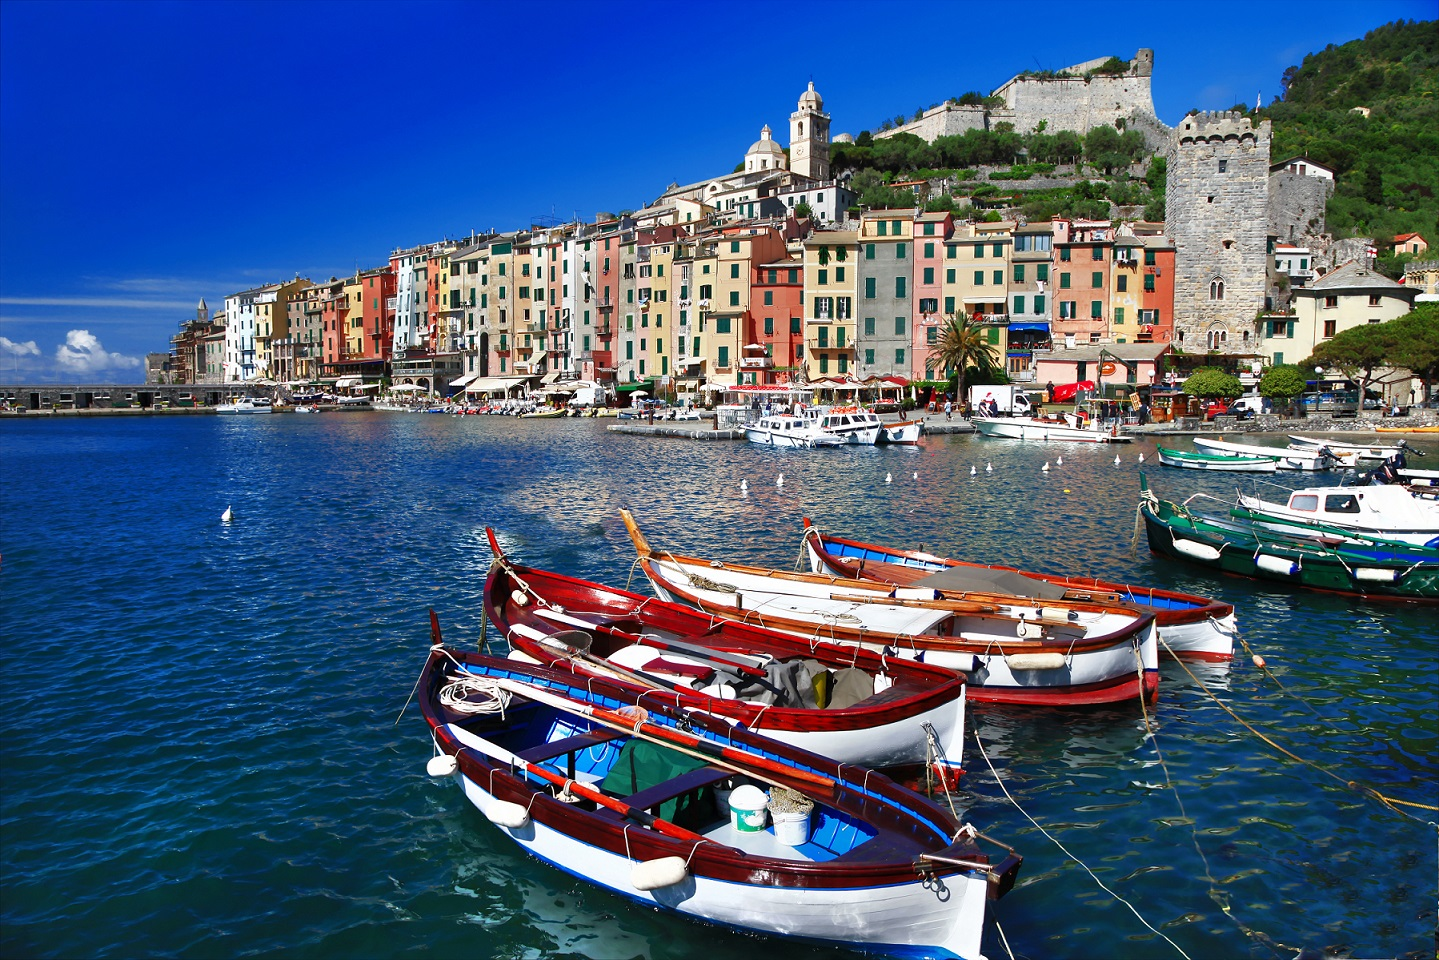 Portovenere from the sea